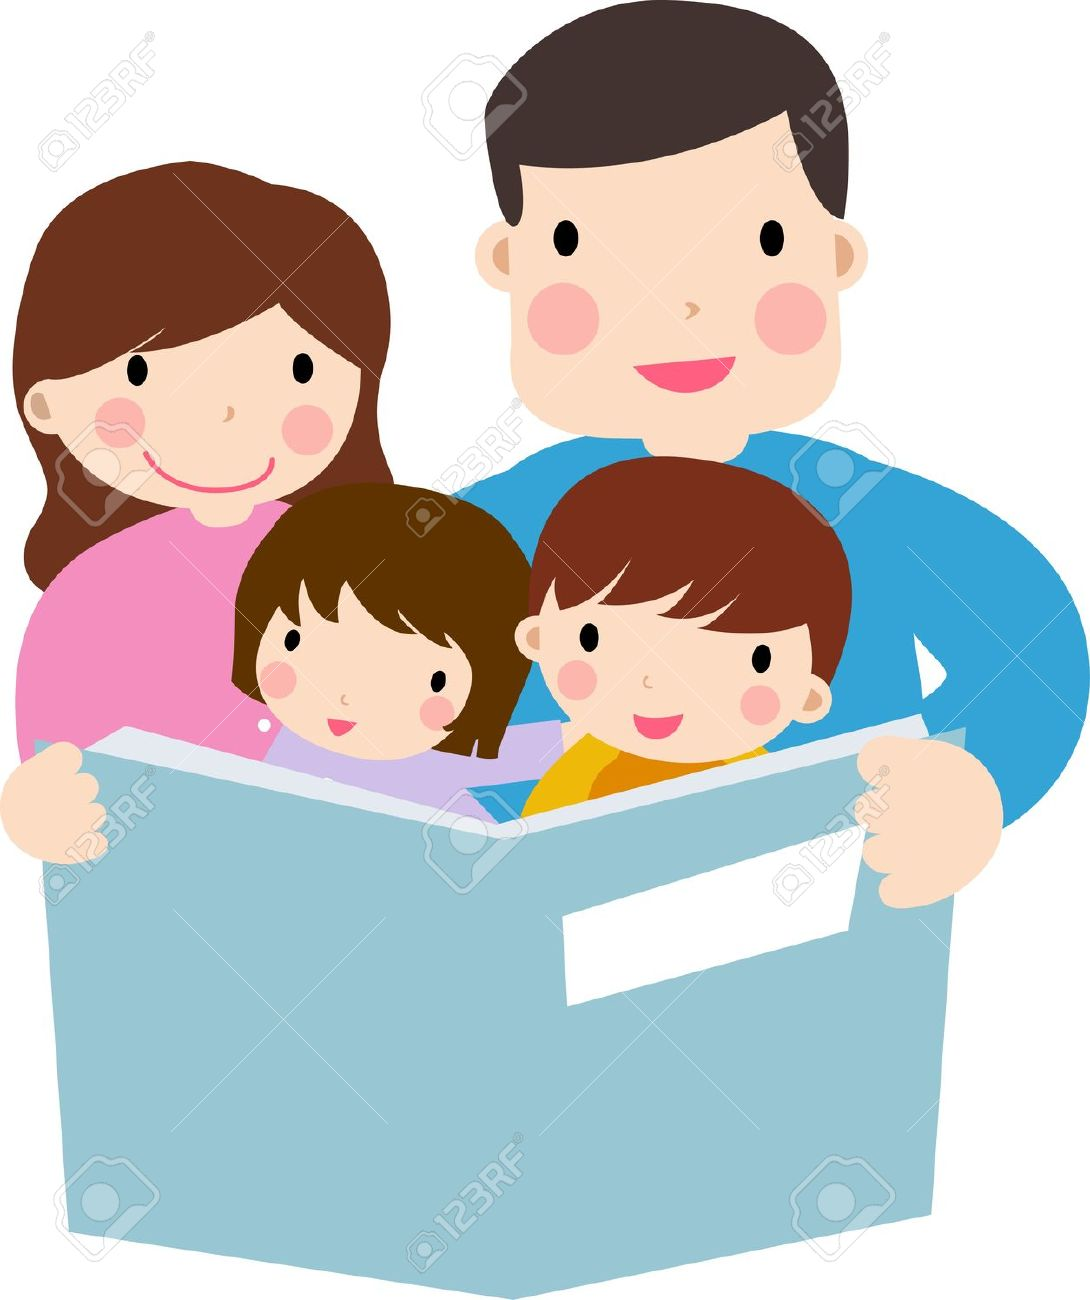 1090x1300 Parents Clip Art